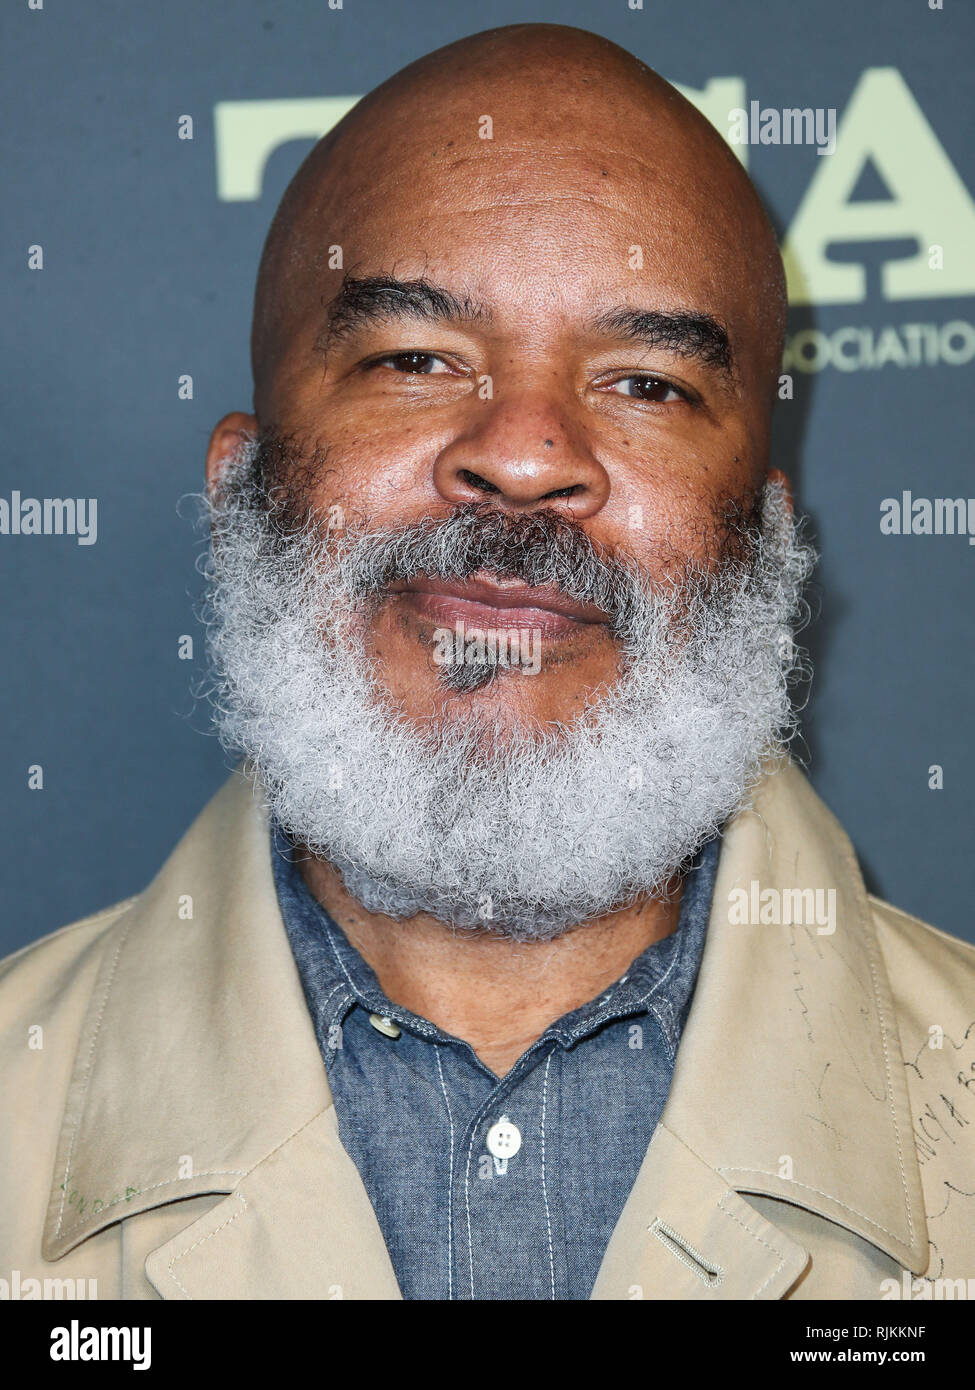 PASADENA, LOS ANGELES, CA, USA - FEBRUARY 06: Actor David Alan Grier arrives at the FOX Winter TCA 2019 All-Star Party held at The Fig House on February 6, 2019 in Pasadena, Los Angeles, California, United States. (Photo by Xavier Collin/Image Press Agency) - Stock Image